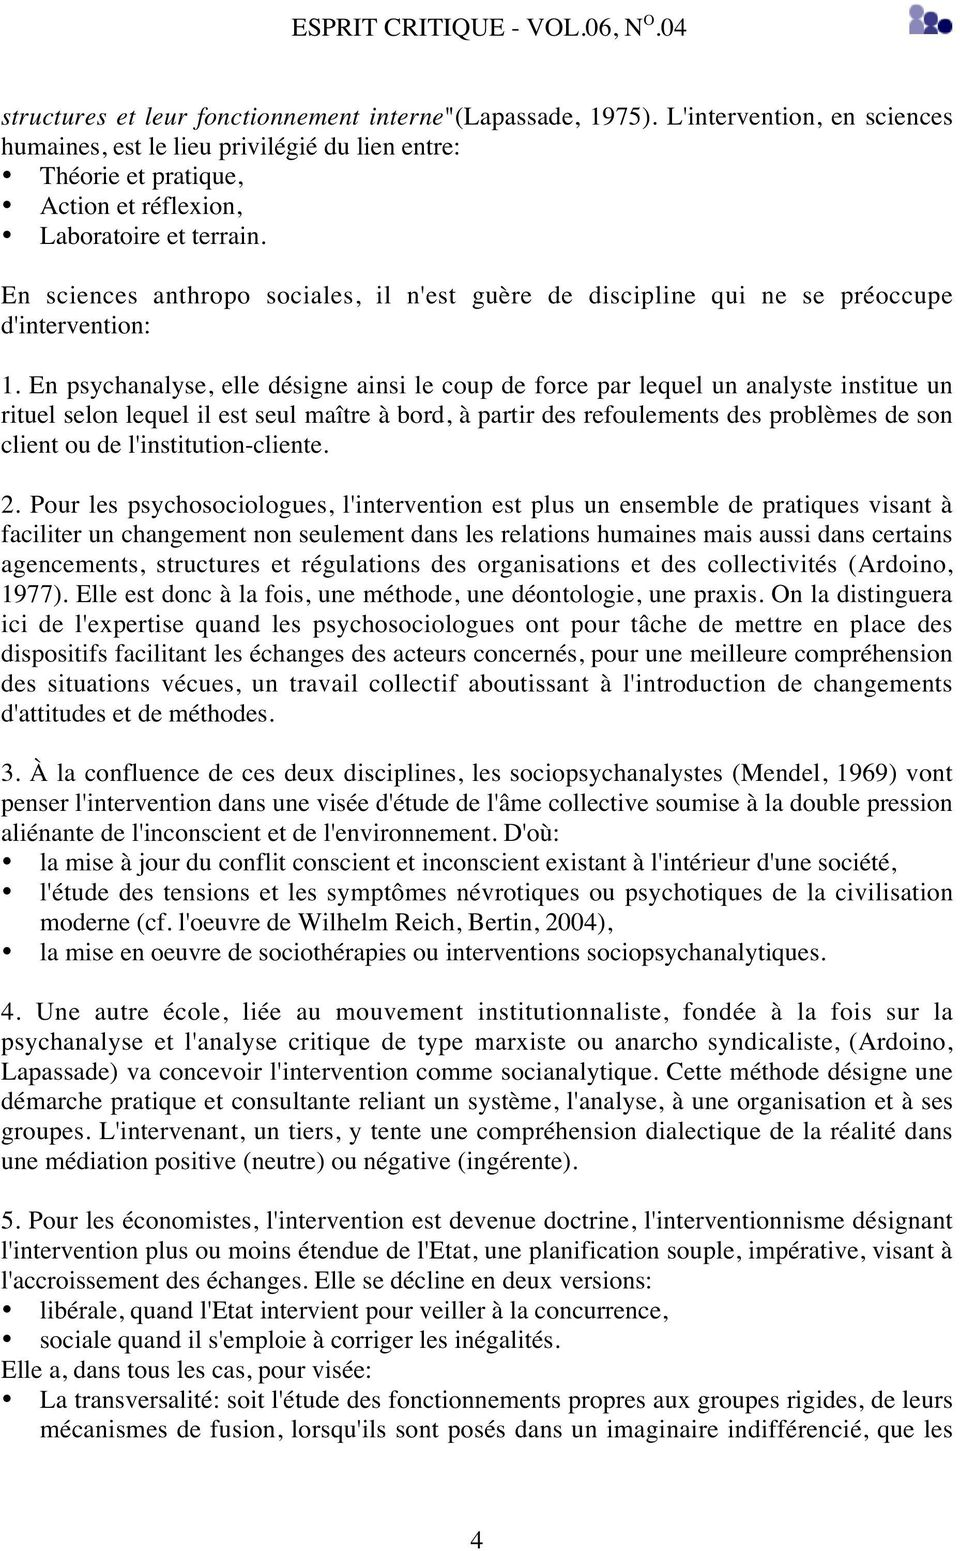 En sciences anthropo sociales, il n'est guère de discipline qui ne se préoccupe d'intervention: 1.